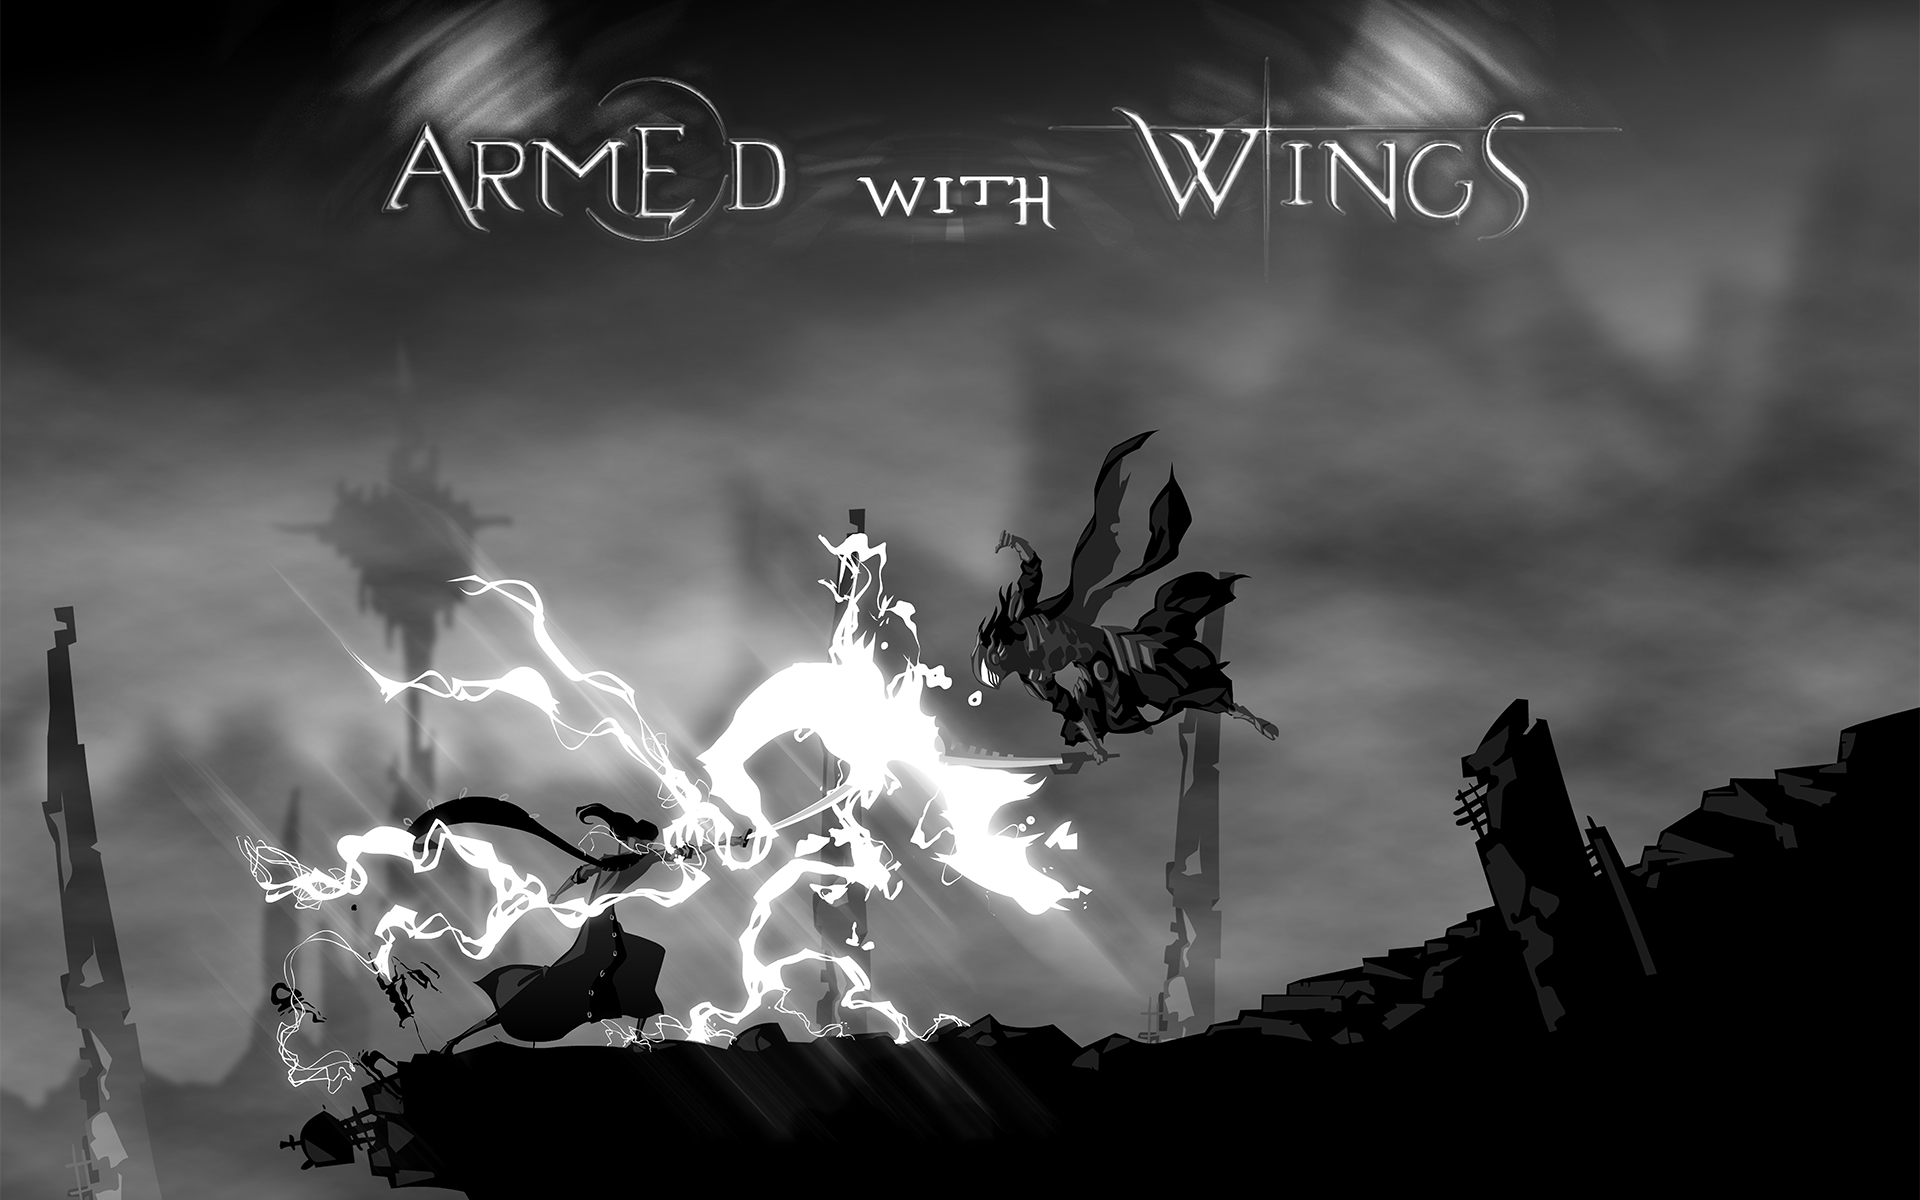 Armed with Wings